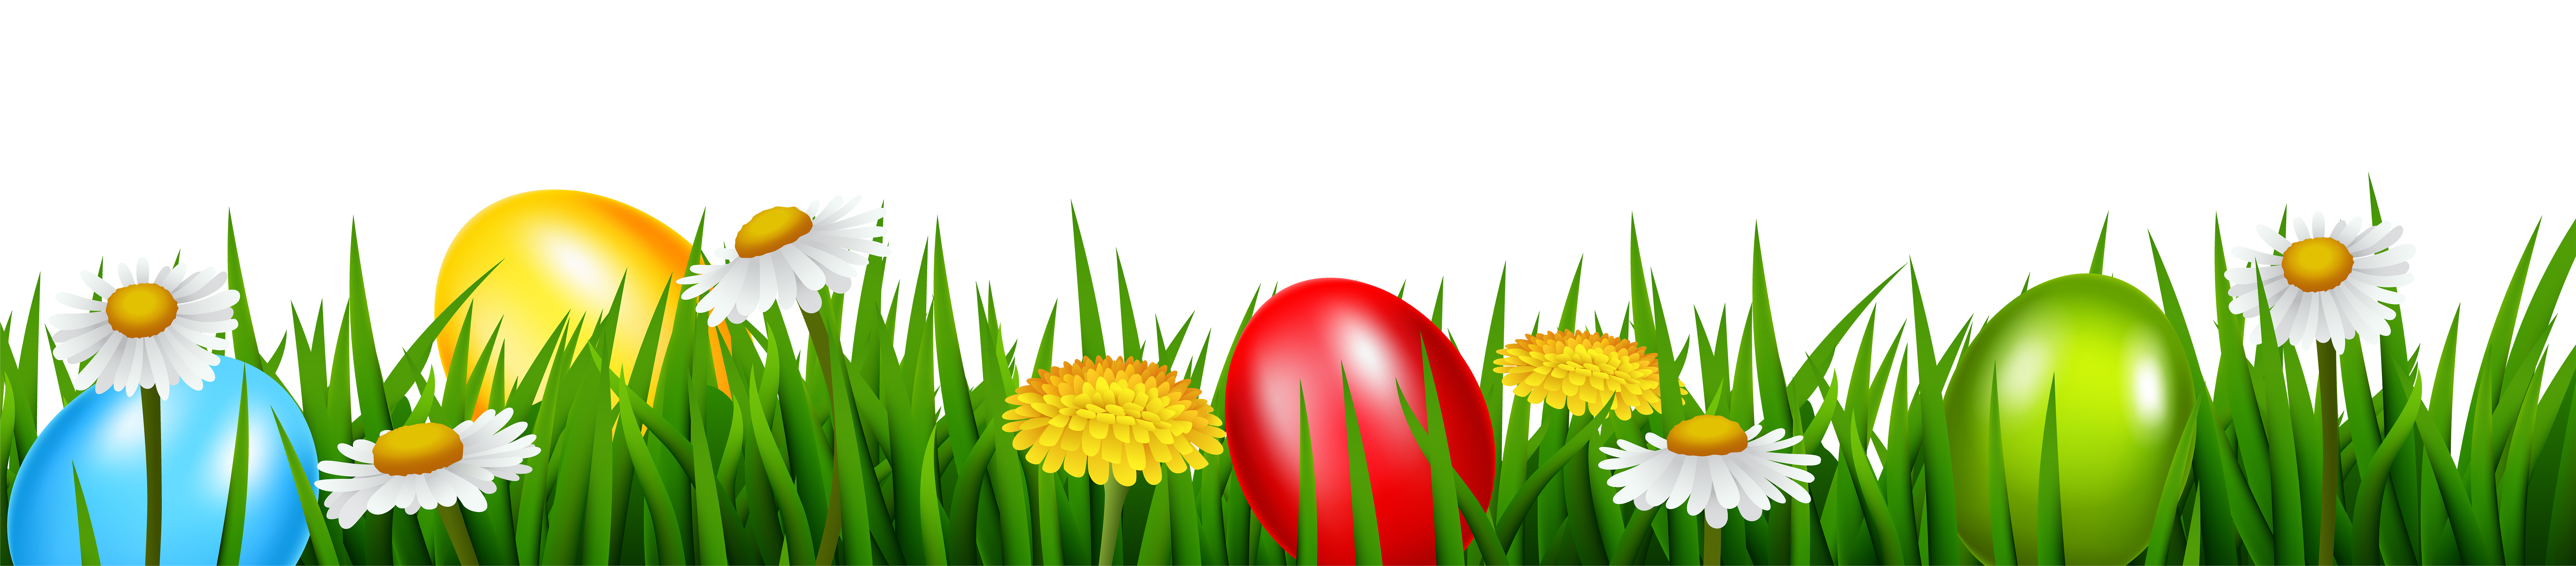 Clipart easter family. Grass transparent png clip